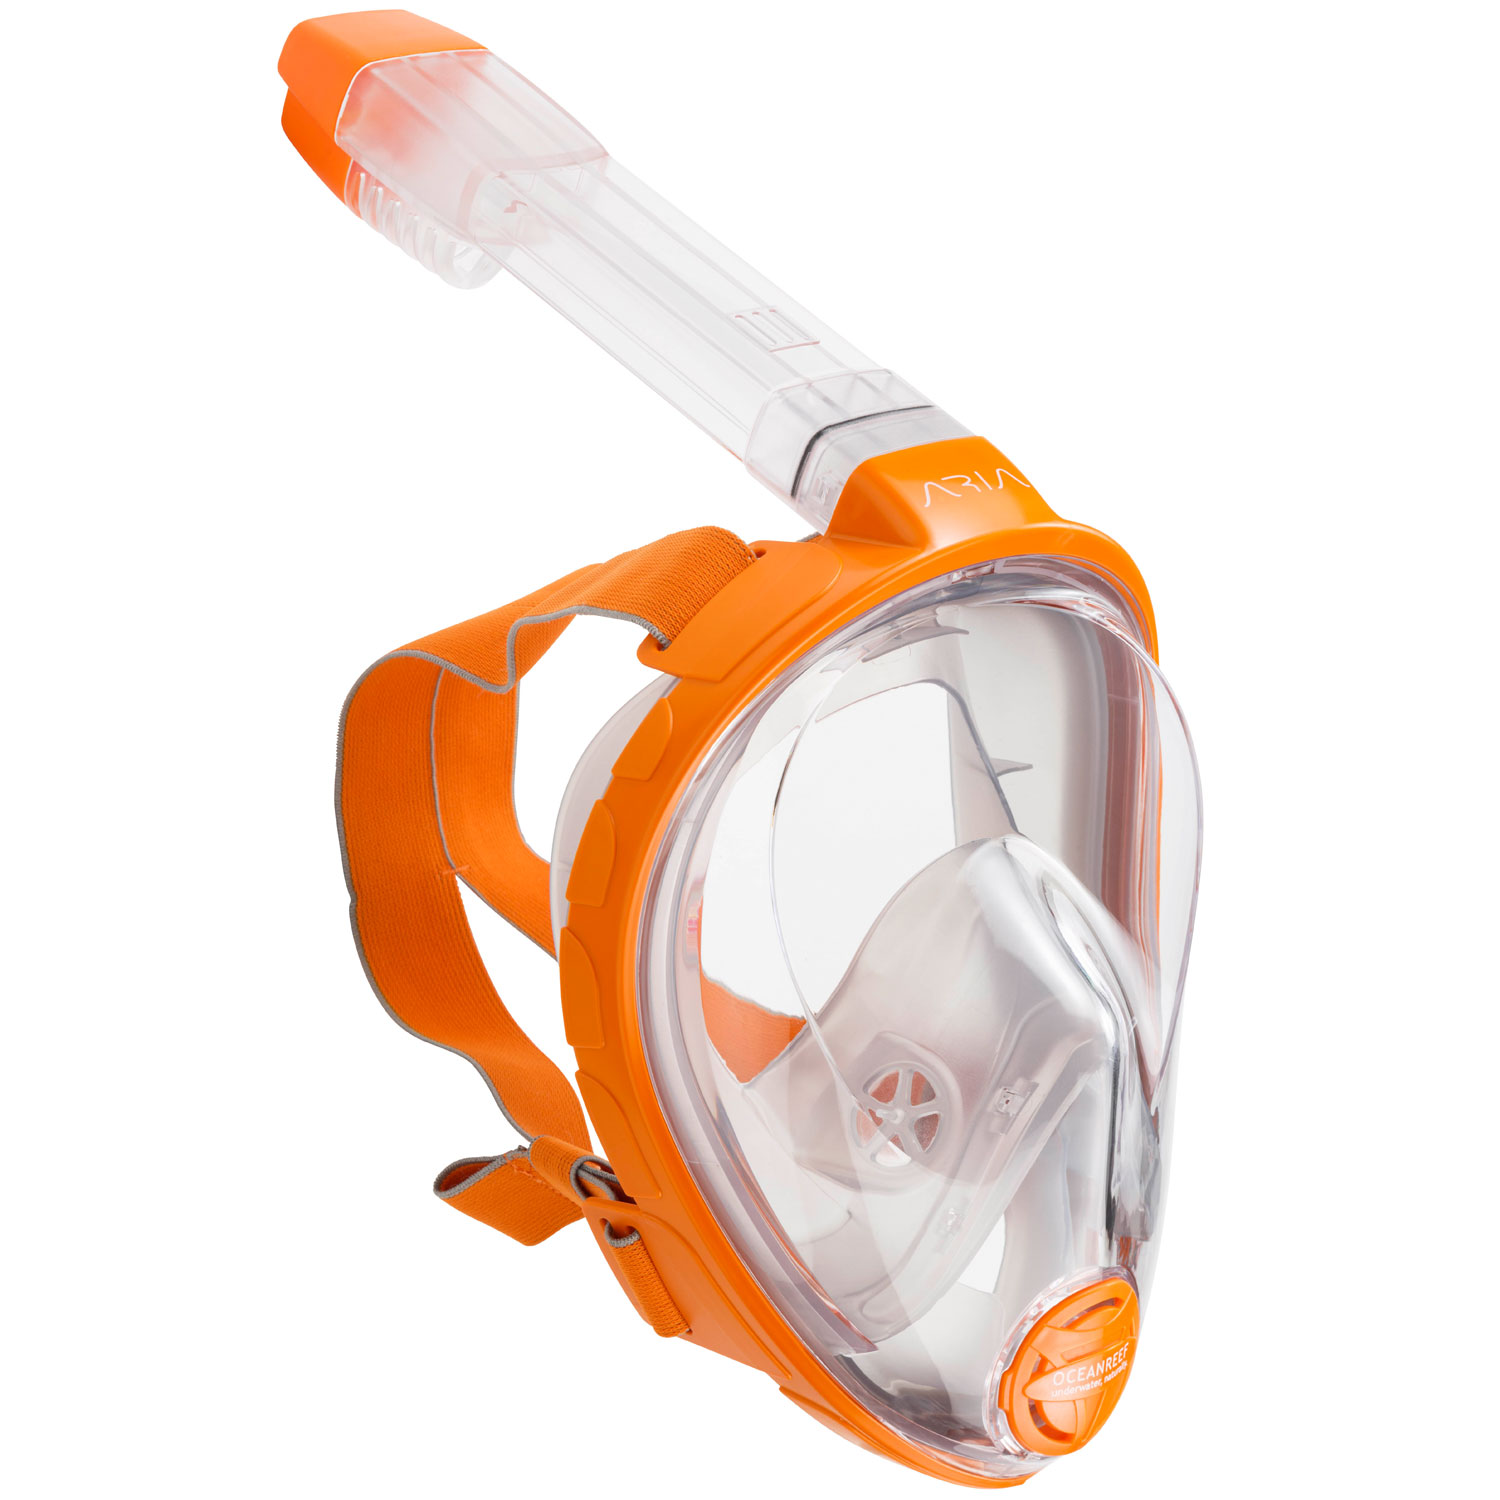 Ocean Reef Aria Full Face Snorkel Mask by